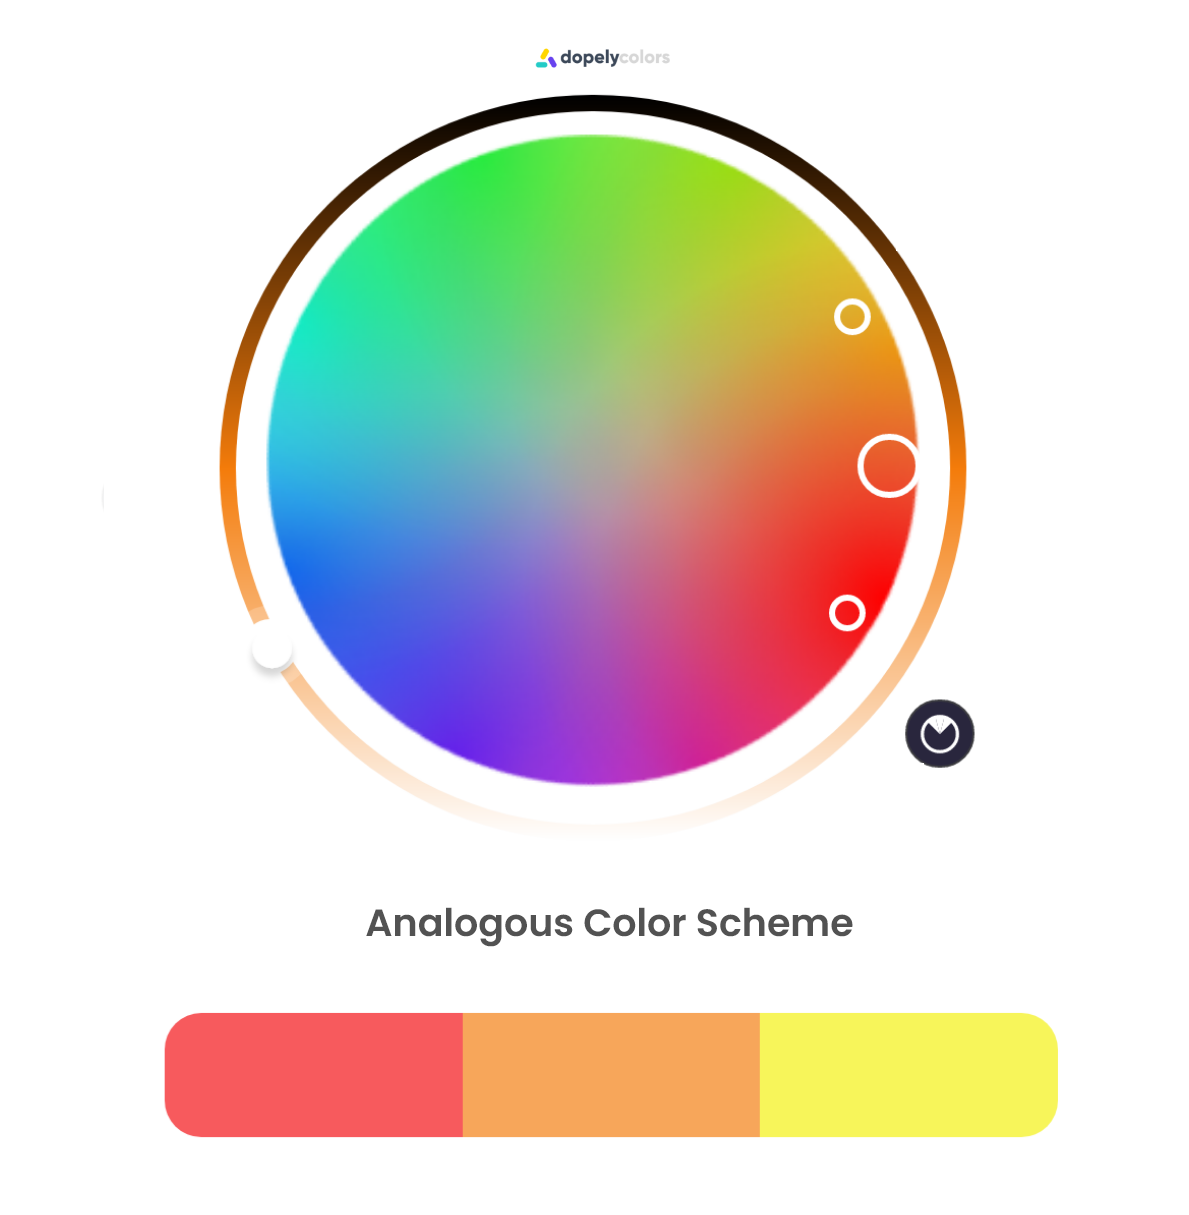 analogous color scheme (red, orange and yellow) sits near each other on color wheel, it is widely use in nature and has harmony.